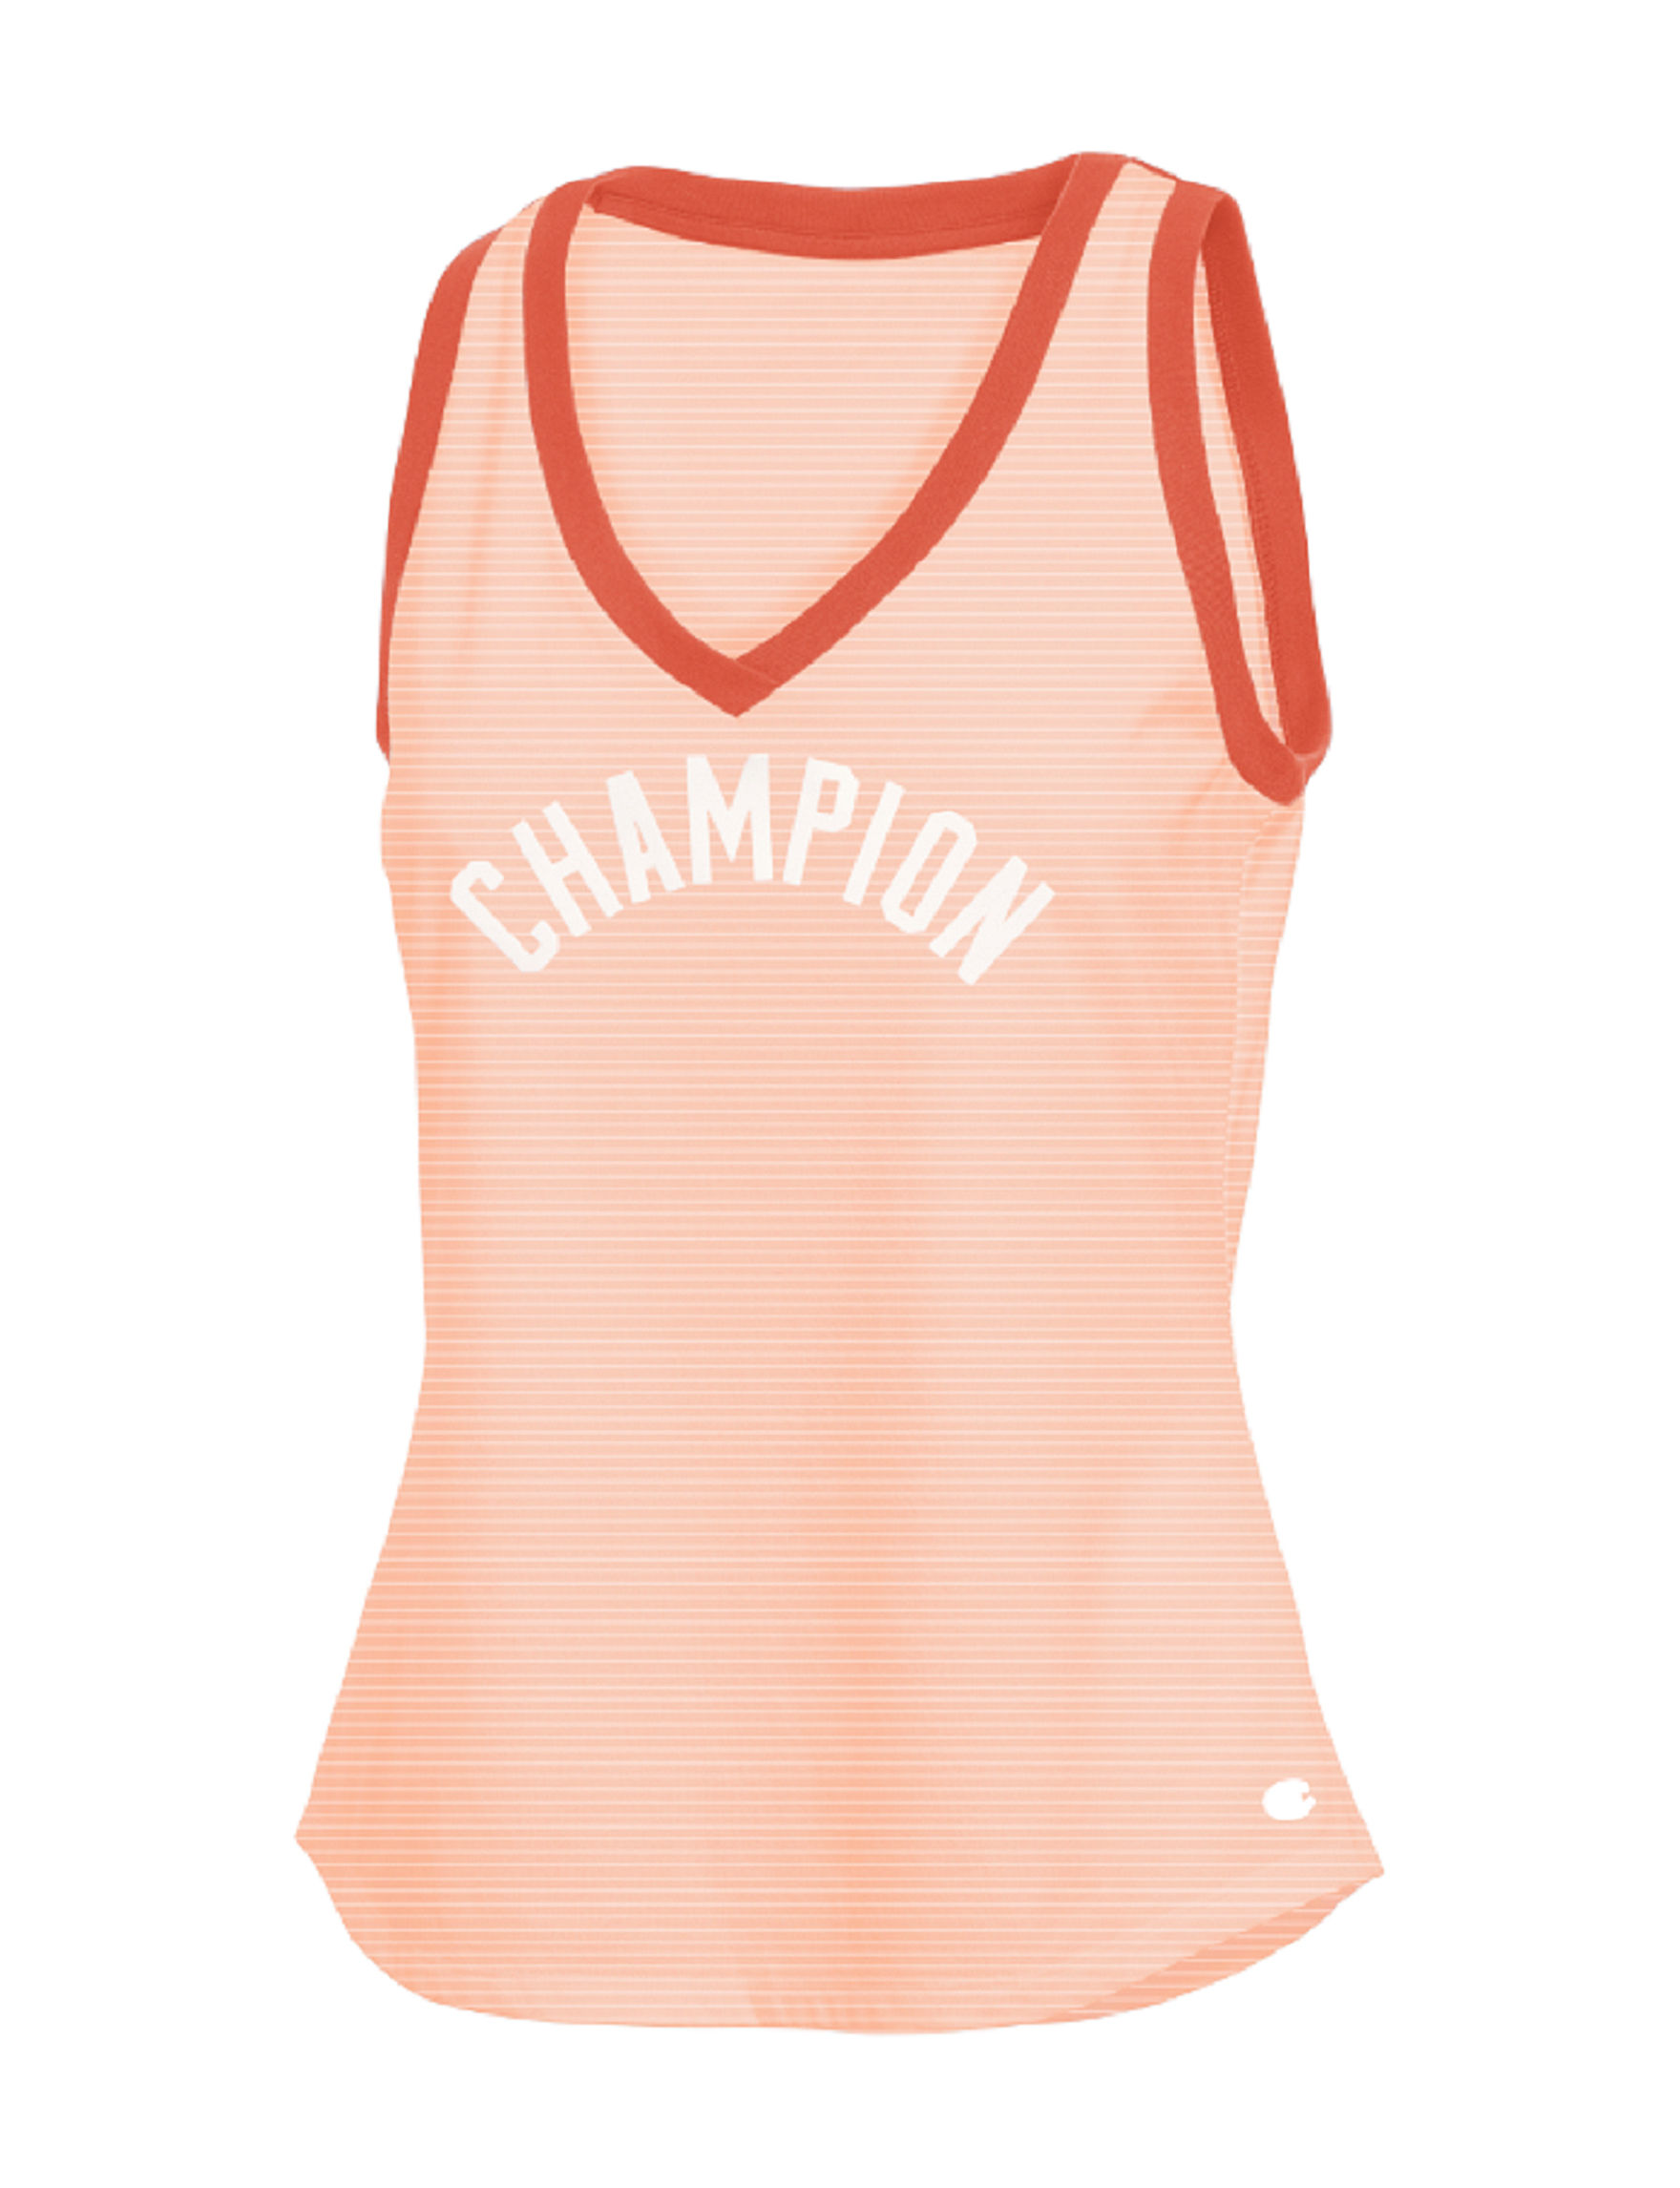 Champion Pink Tees & Tanks